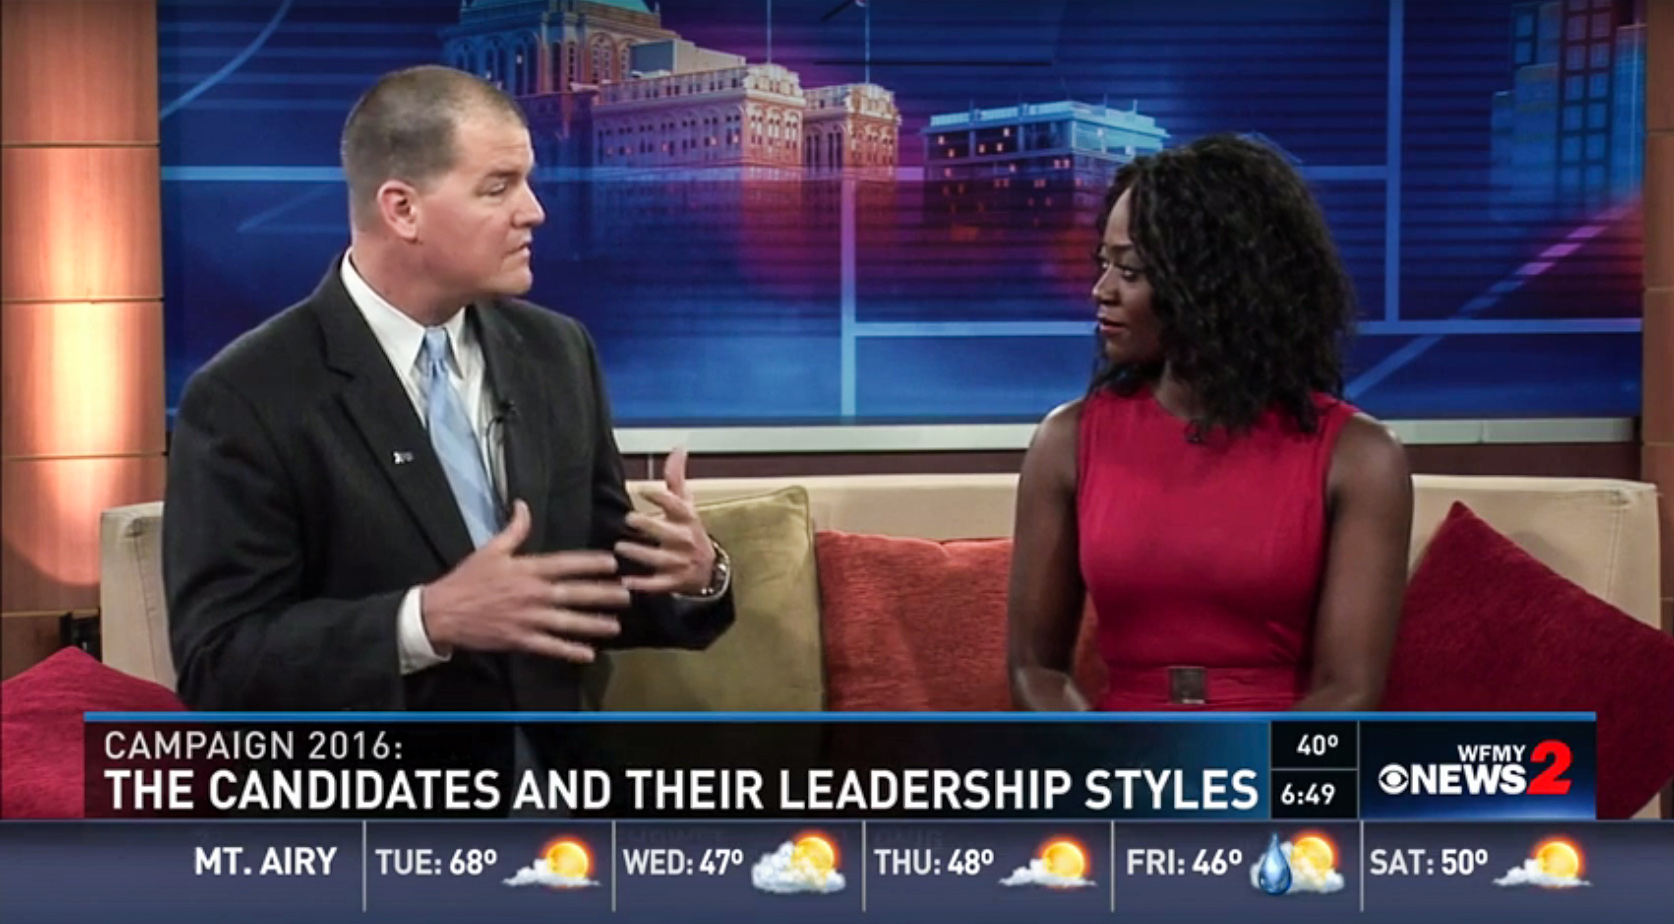 Dr. Tjai Nielsen, associate professor of management, discussed with WFMY anchor Faith Abubey the presidential candidates and what leadership qualities voters should look for.